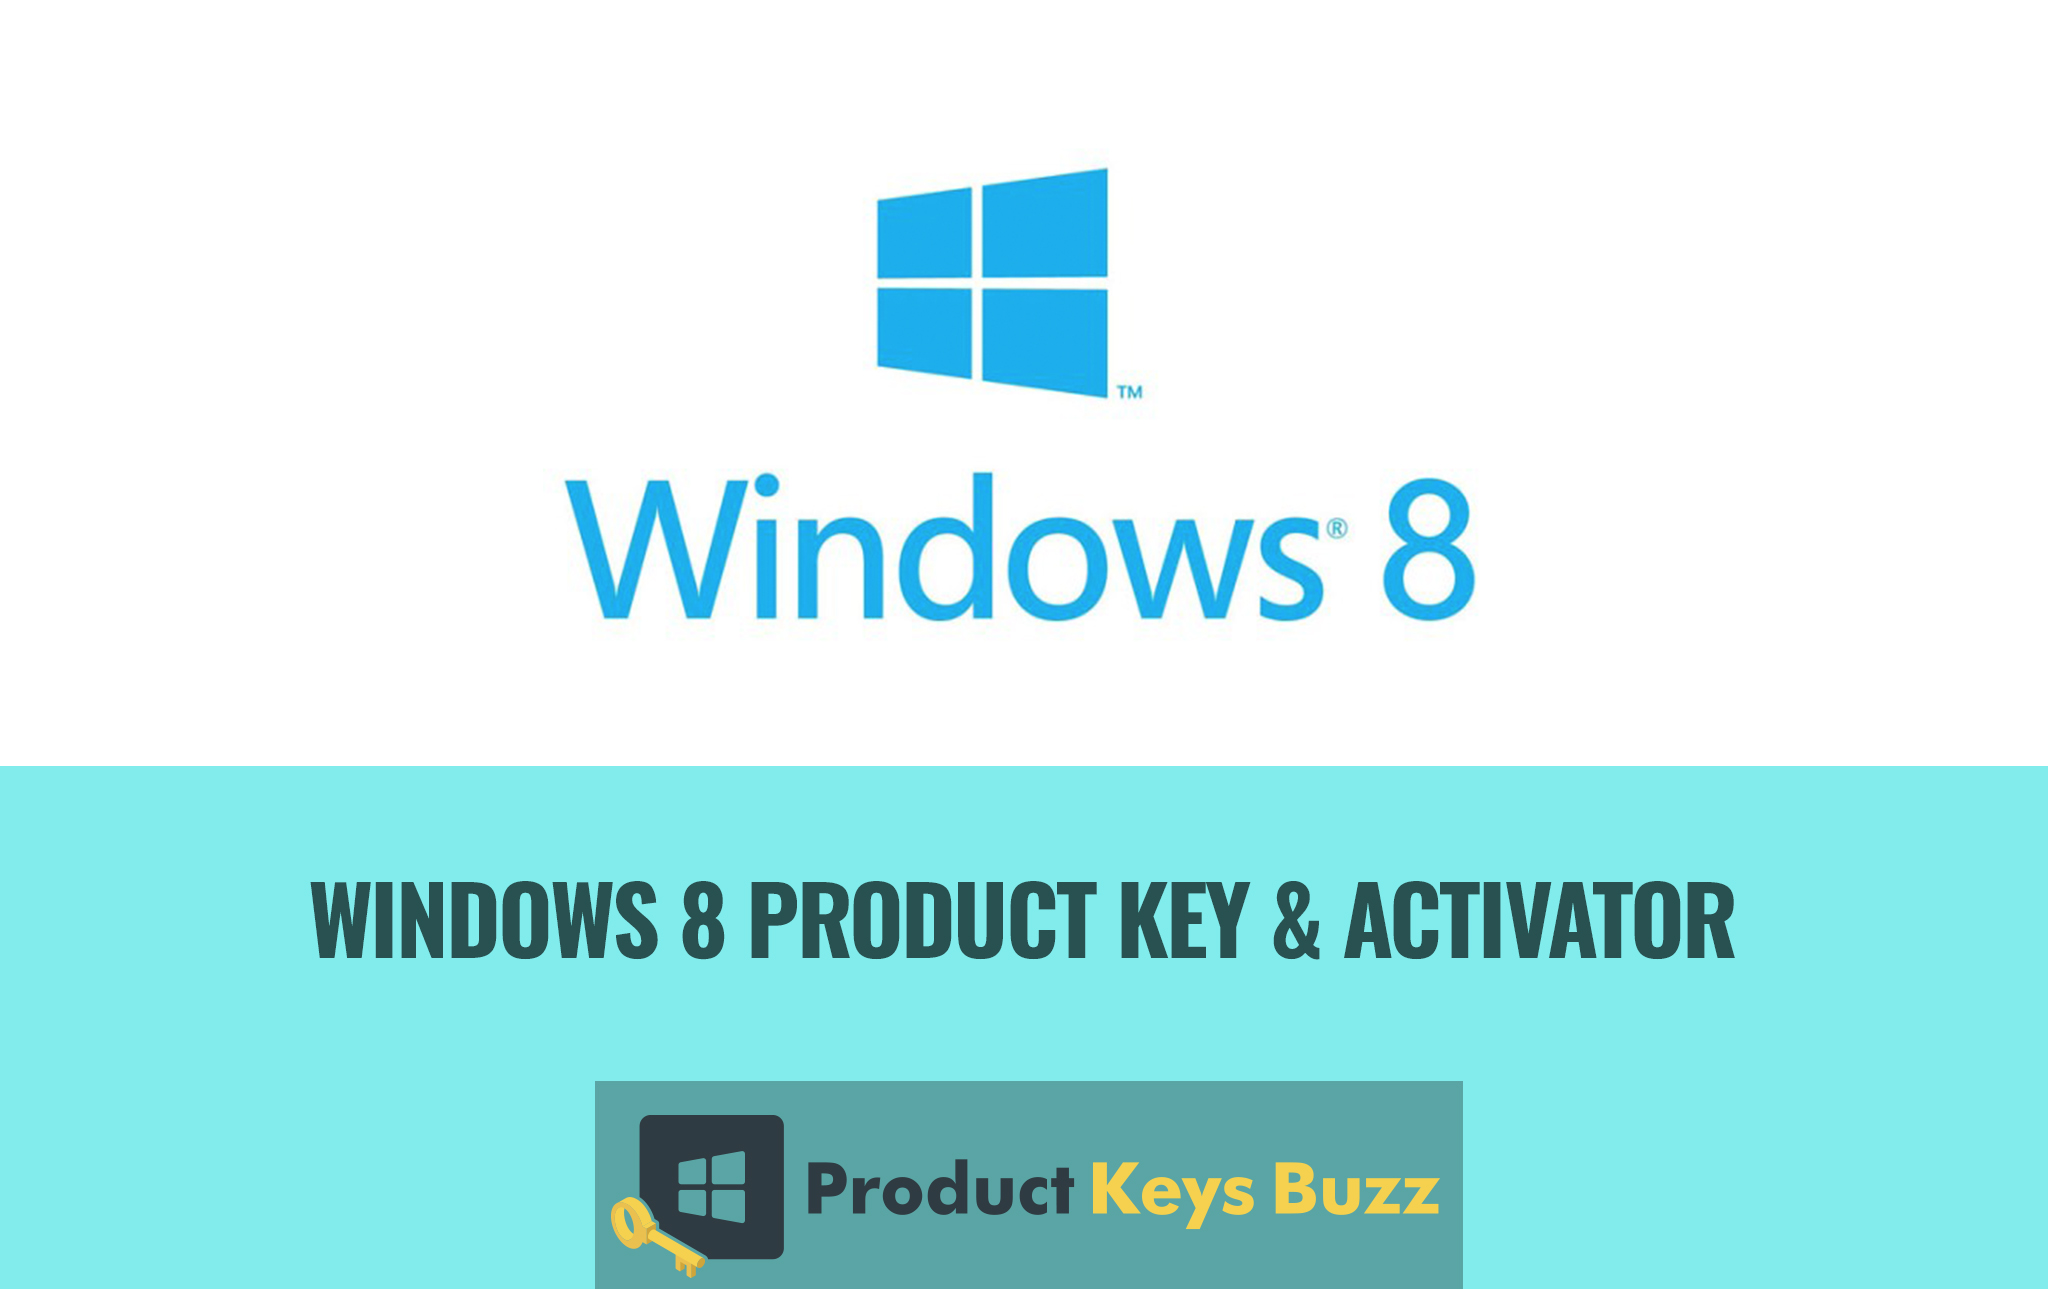 Windows 8 Product Key & Activator